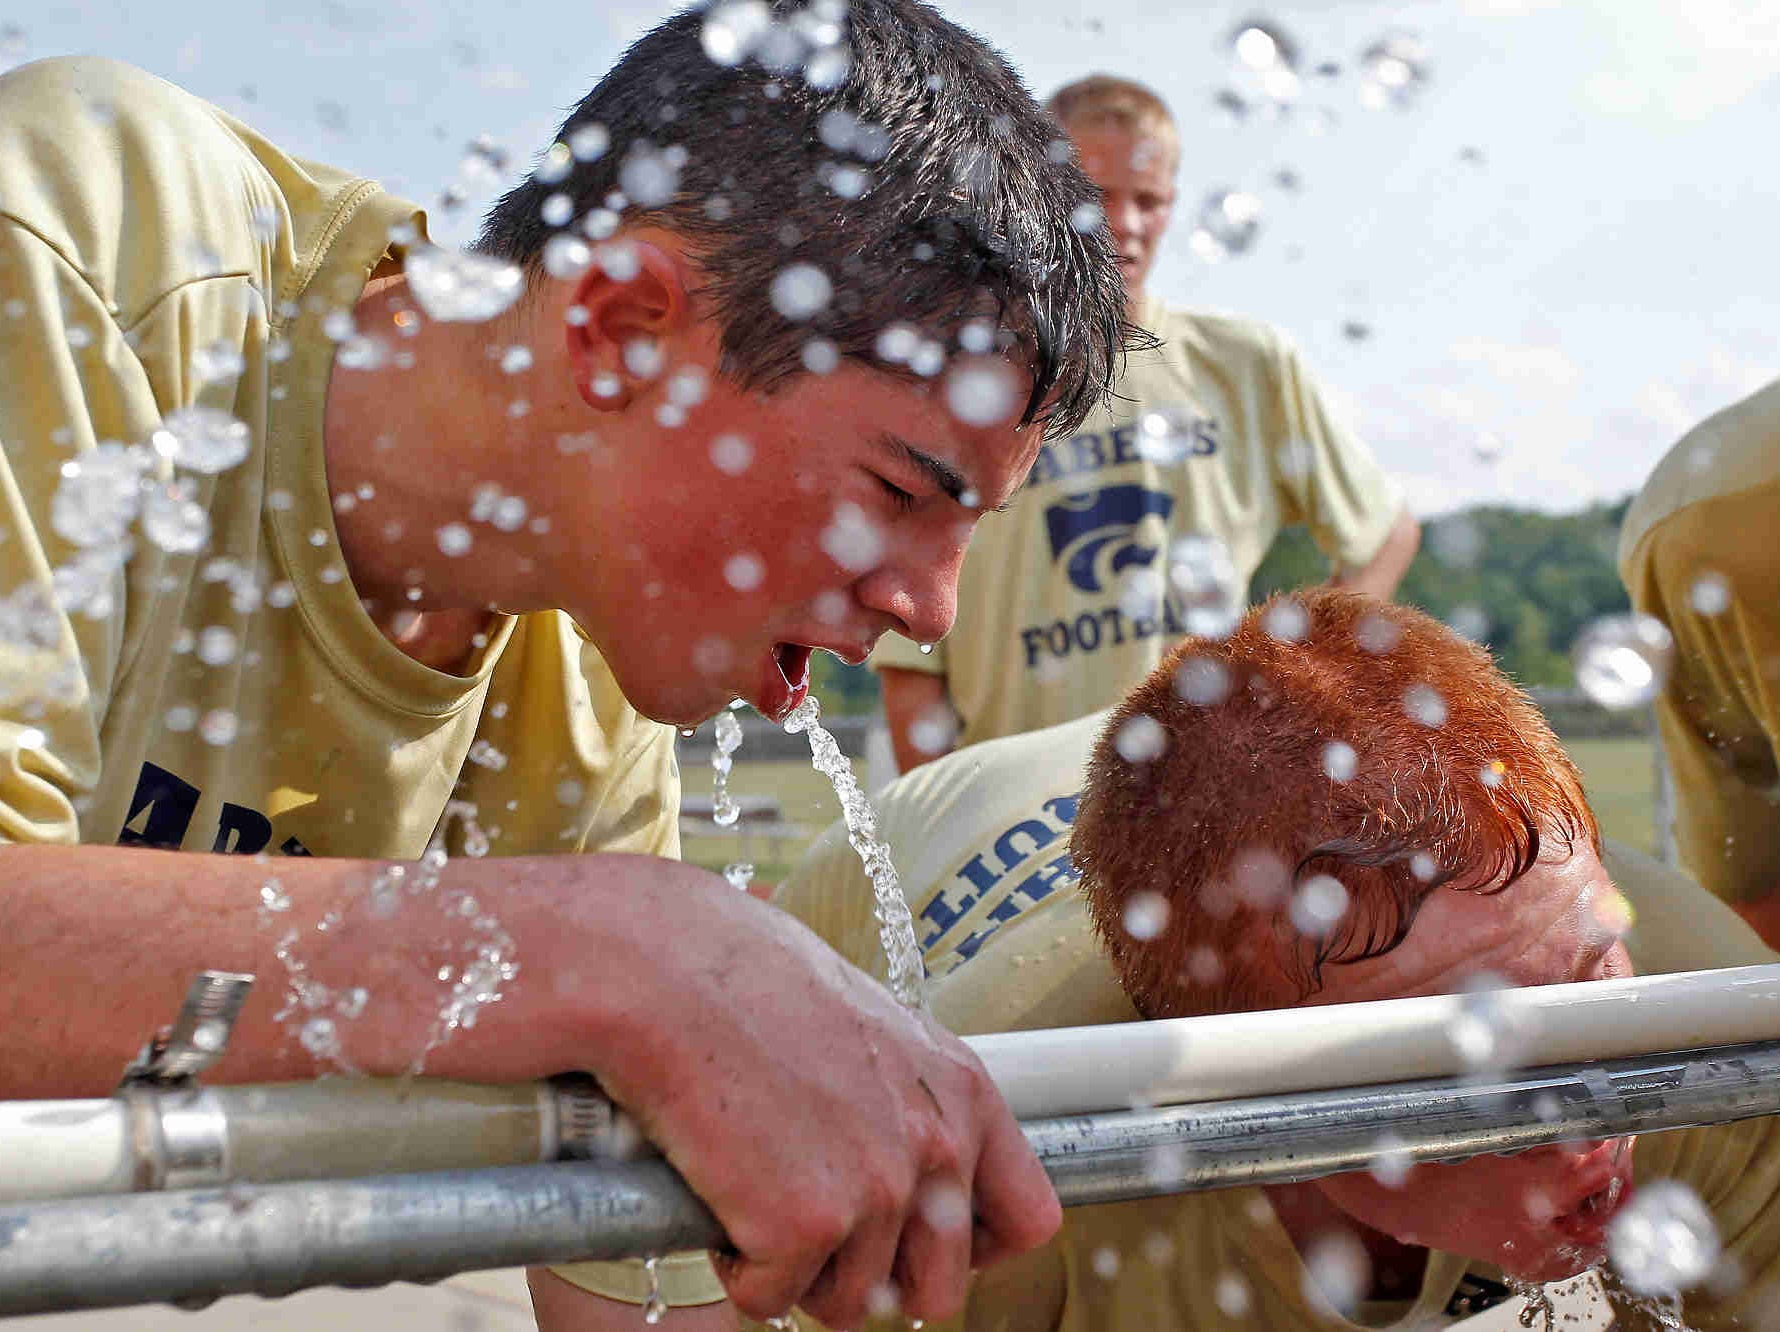 Players cool off Monday during football practice at Susquehanna Valley High School. It was the first day of high school practices in New York. First day of football practice at Susquehanna Valley High School. Monday, August 17, 2015.